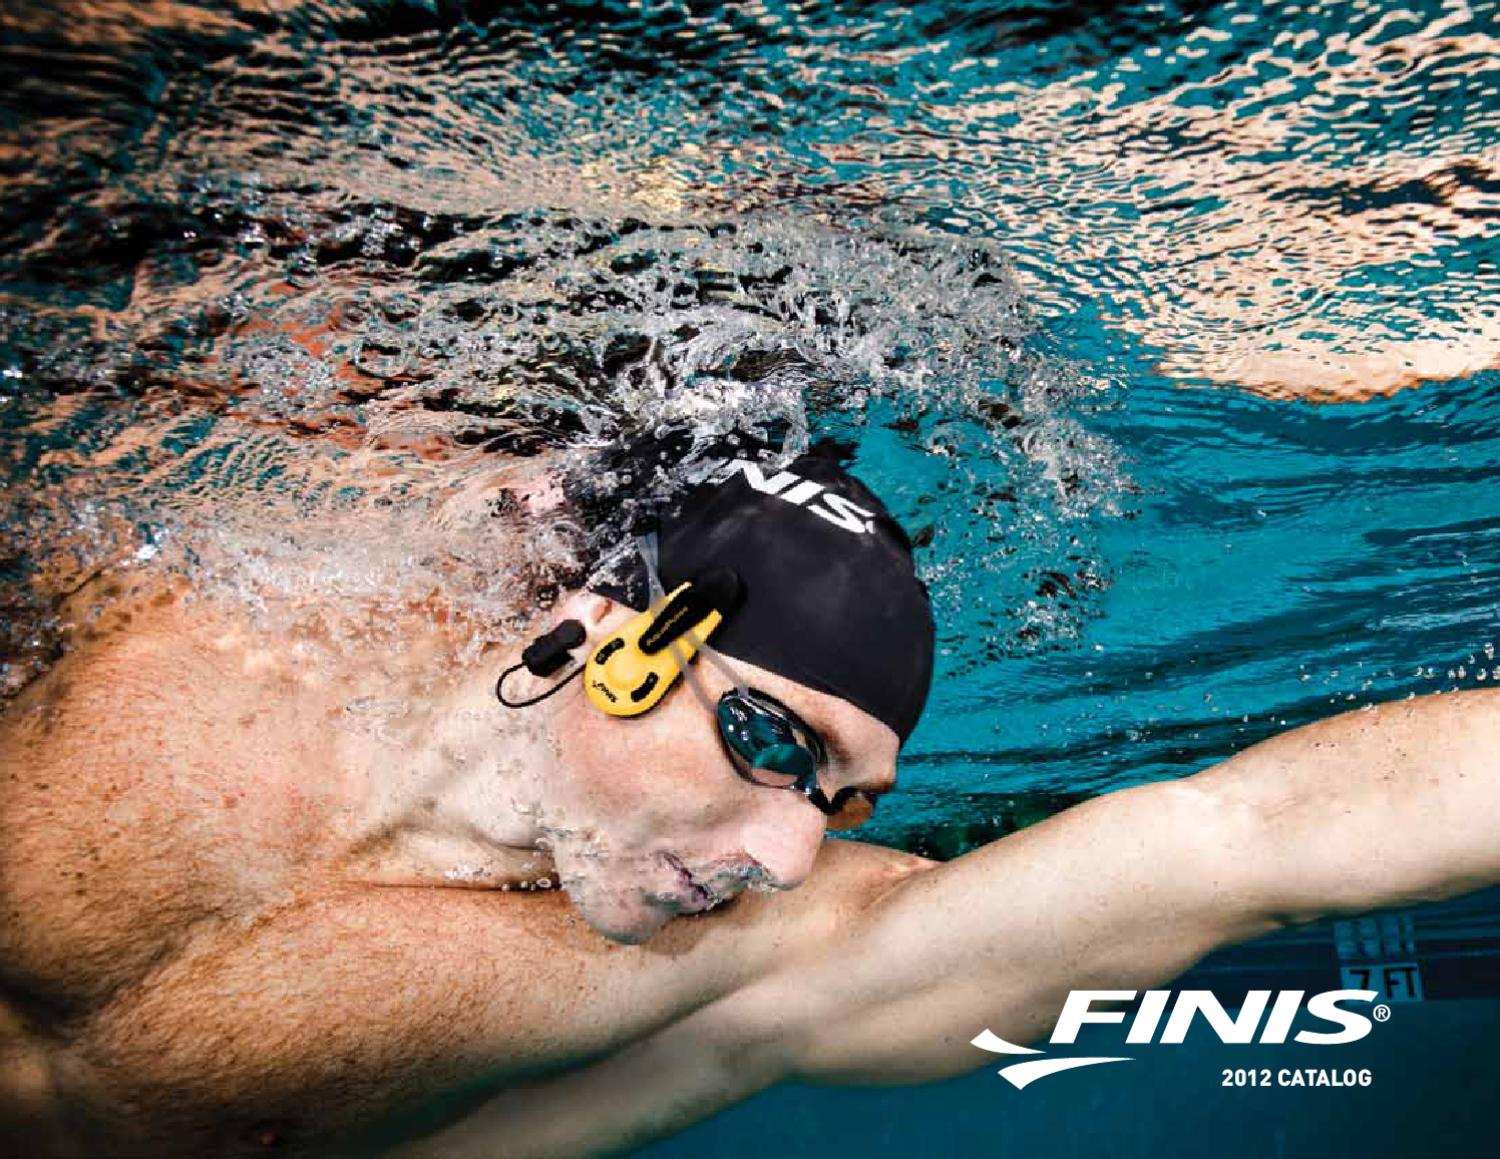 Swimming Pool Equipment Swimfin Swim Research Swim Training Floating Fins for Leg Strength and Aquatic Water Exercise